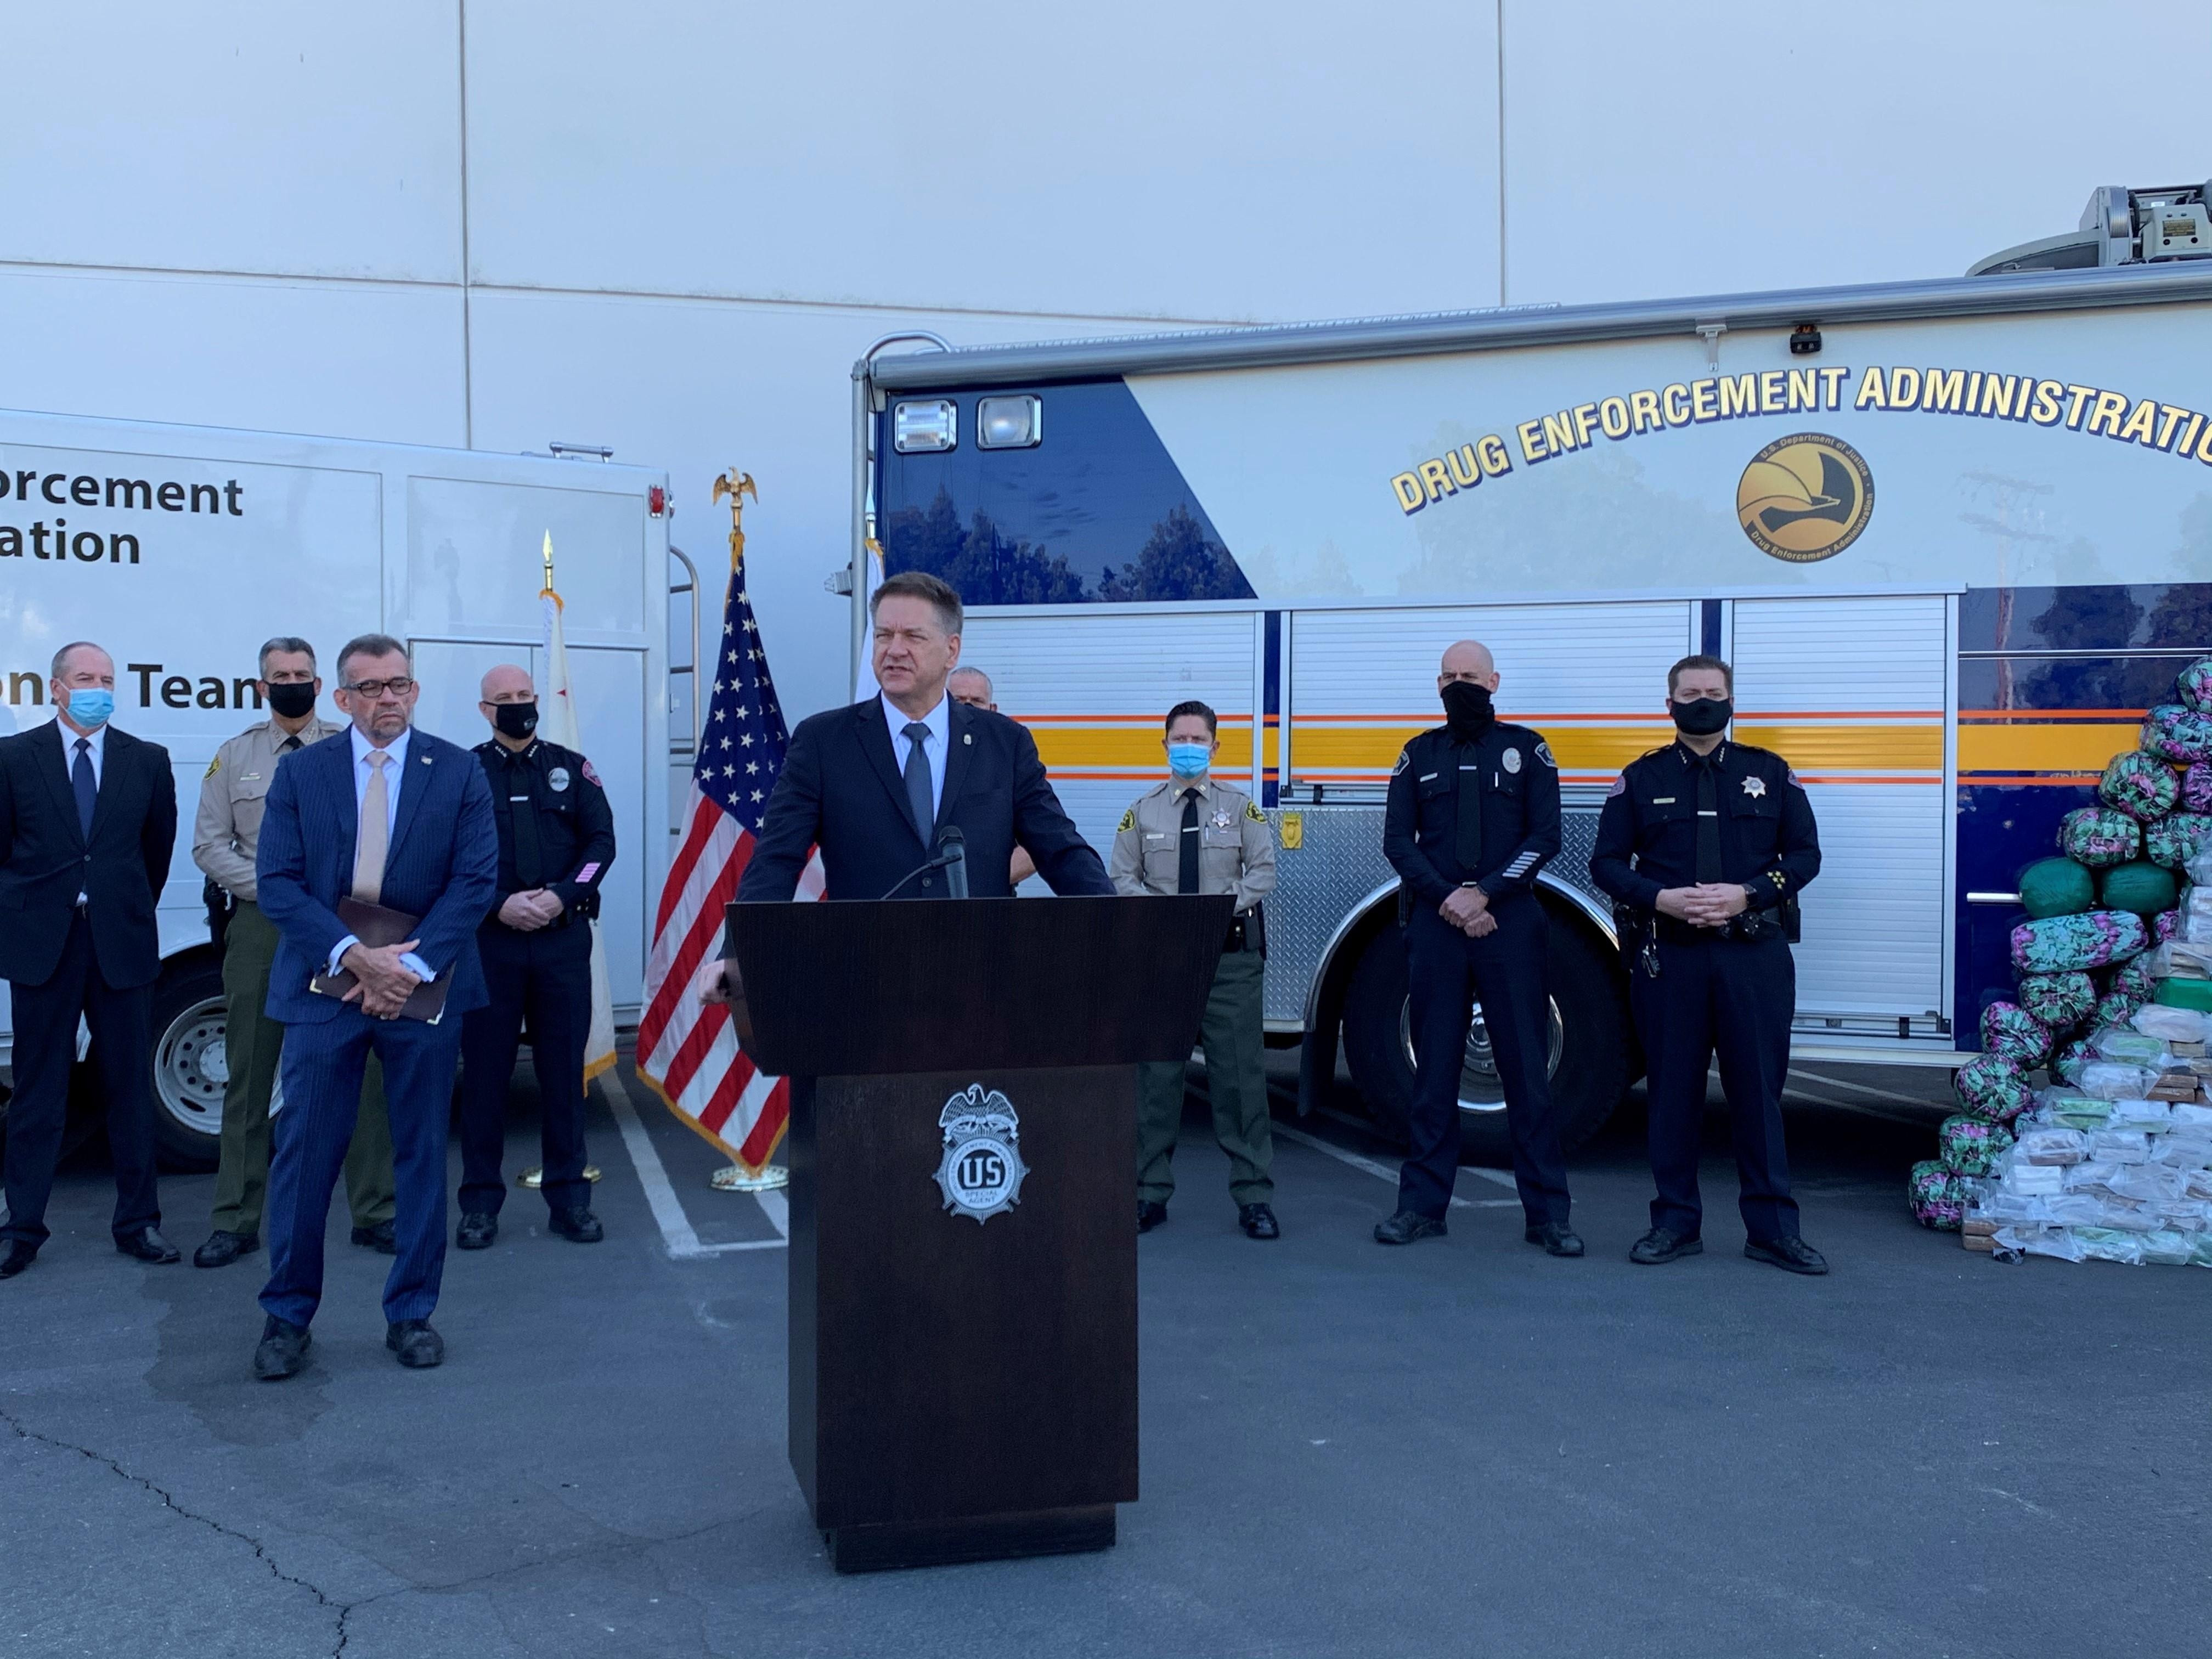 DEA Acting Administrator Timothy J. Shea and Los Angeles Field Division Special Agent in Charge Bill Bodner speaking at the press conference